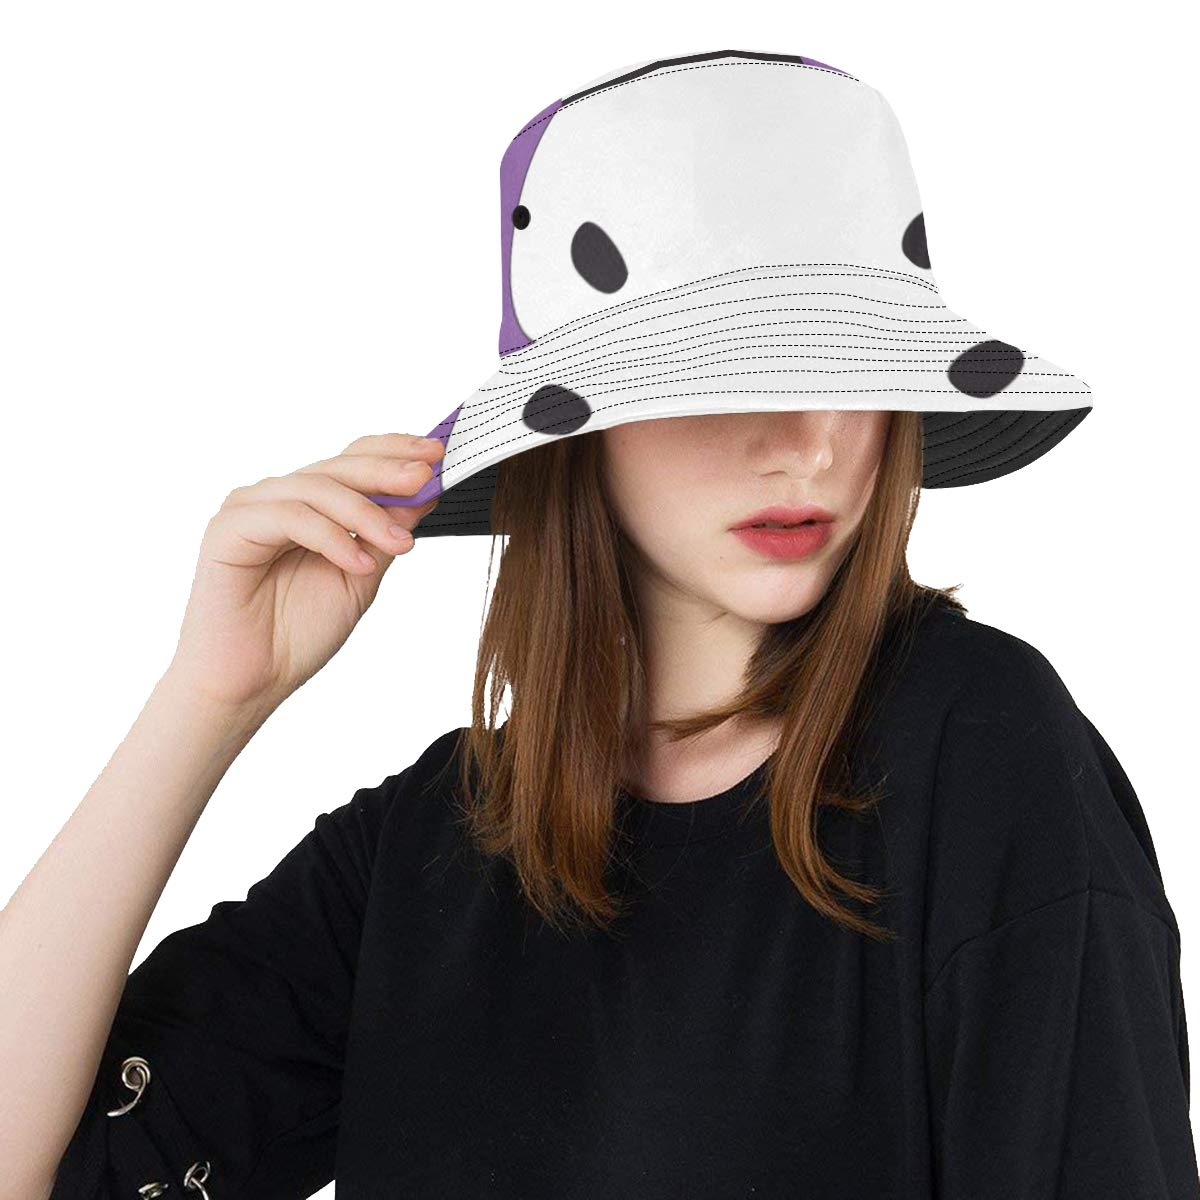 Hippo Cartoon New Summer Unisex Cotton Fashion Fishing Sun Bucket Hats for Kid Teens Women and Men with Customize Top Packable Fisherman Cap for Outdoor Travel